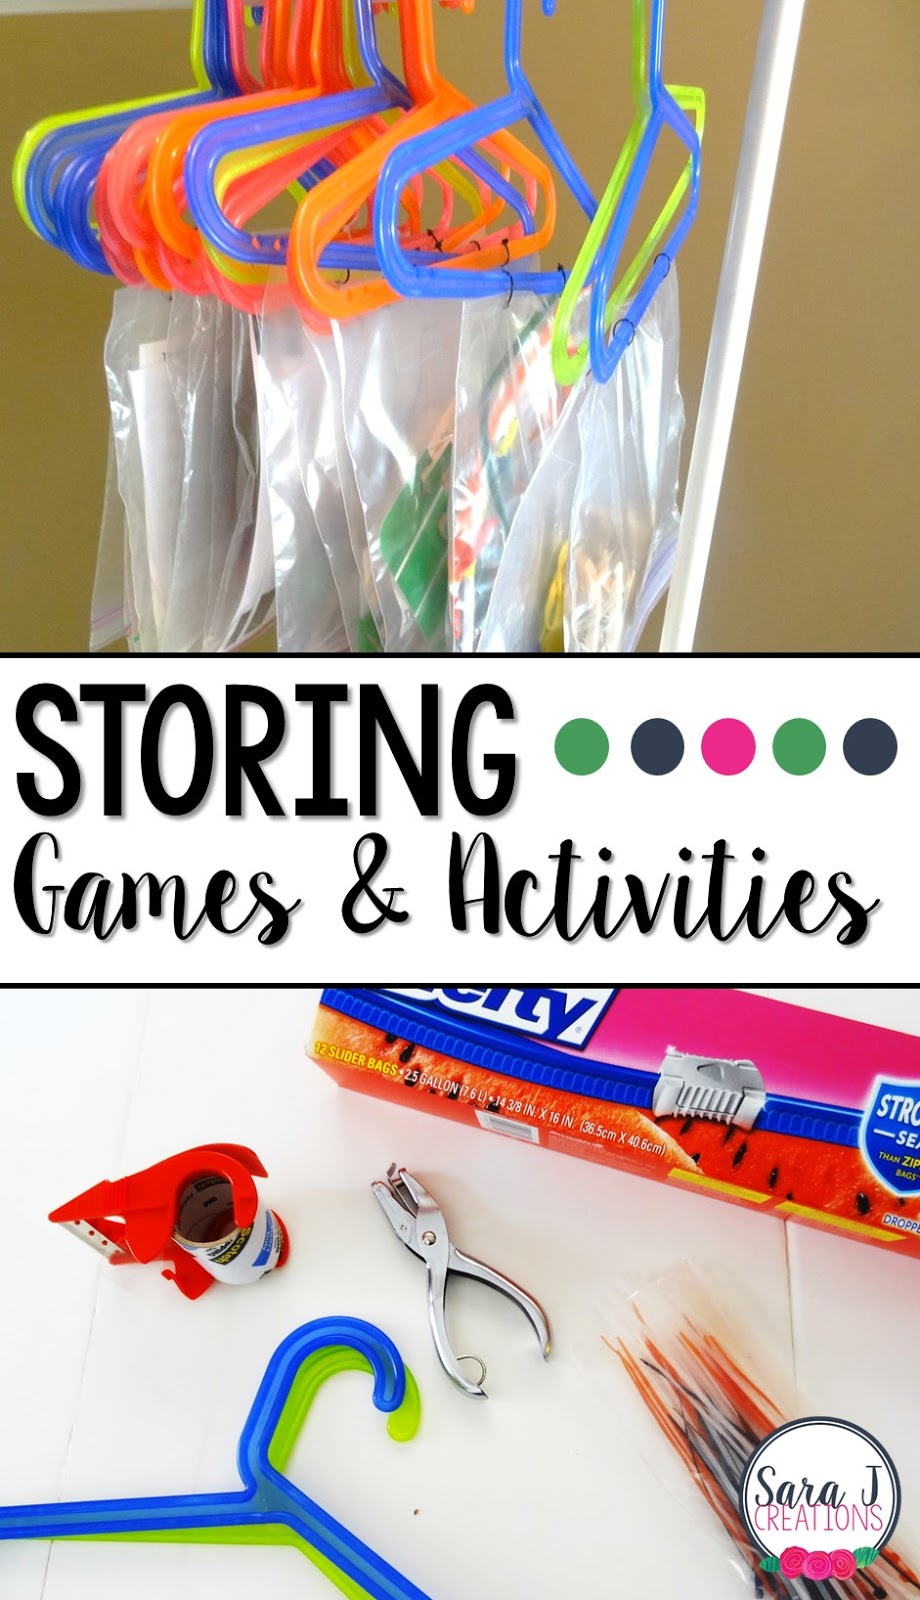 An easy way to store games and activities!  Perfect for the classroom or even in your home.  No more pieces all over or wasted space.  Do you already have these supplies laying around?